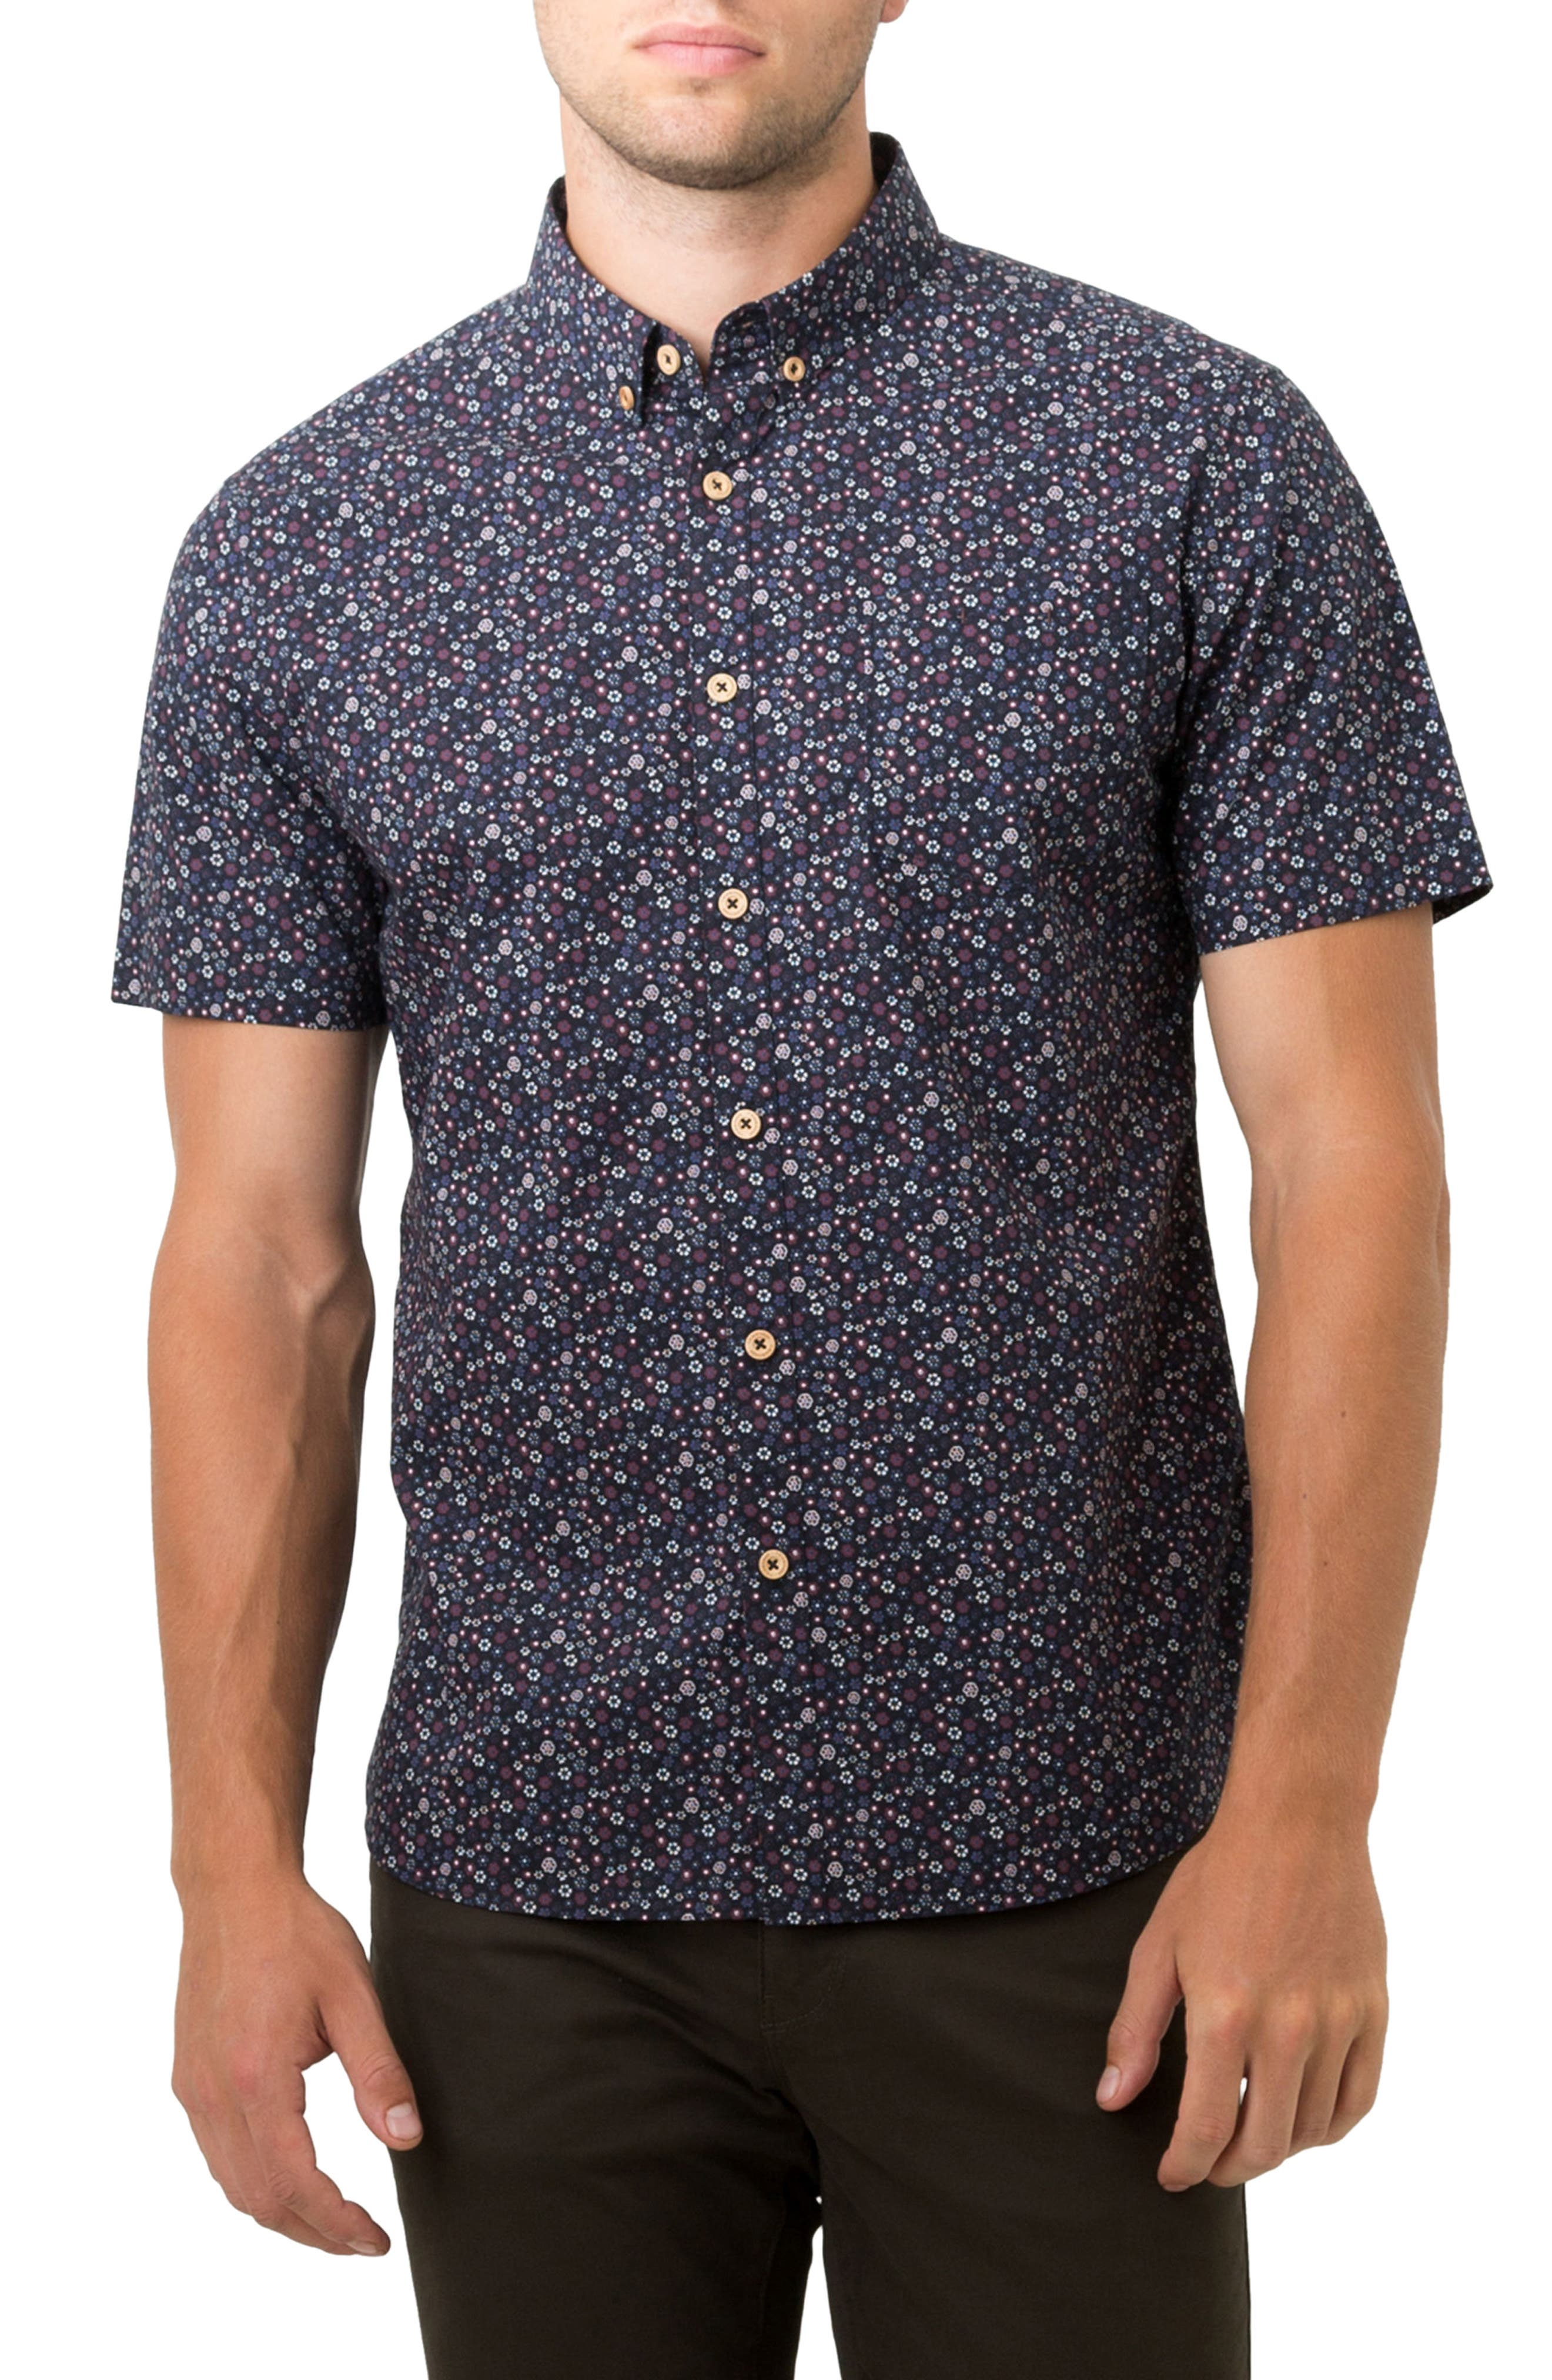 Pure Luck Woven Shirt,                         Main,                         color, 410